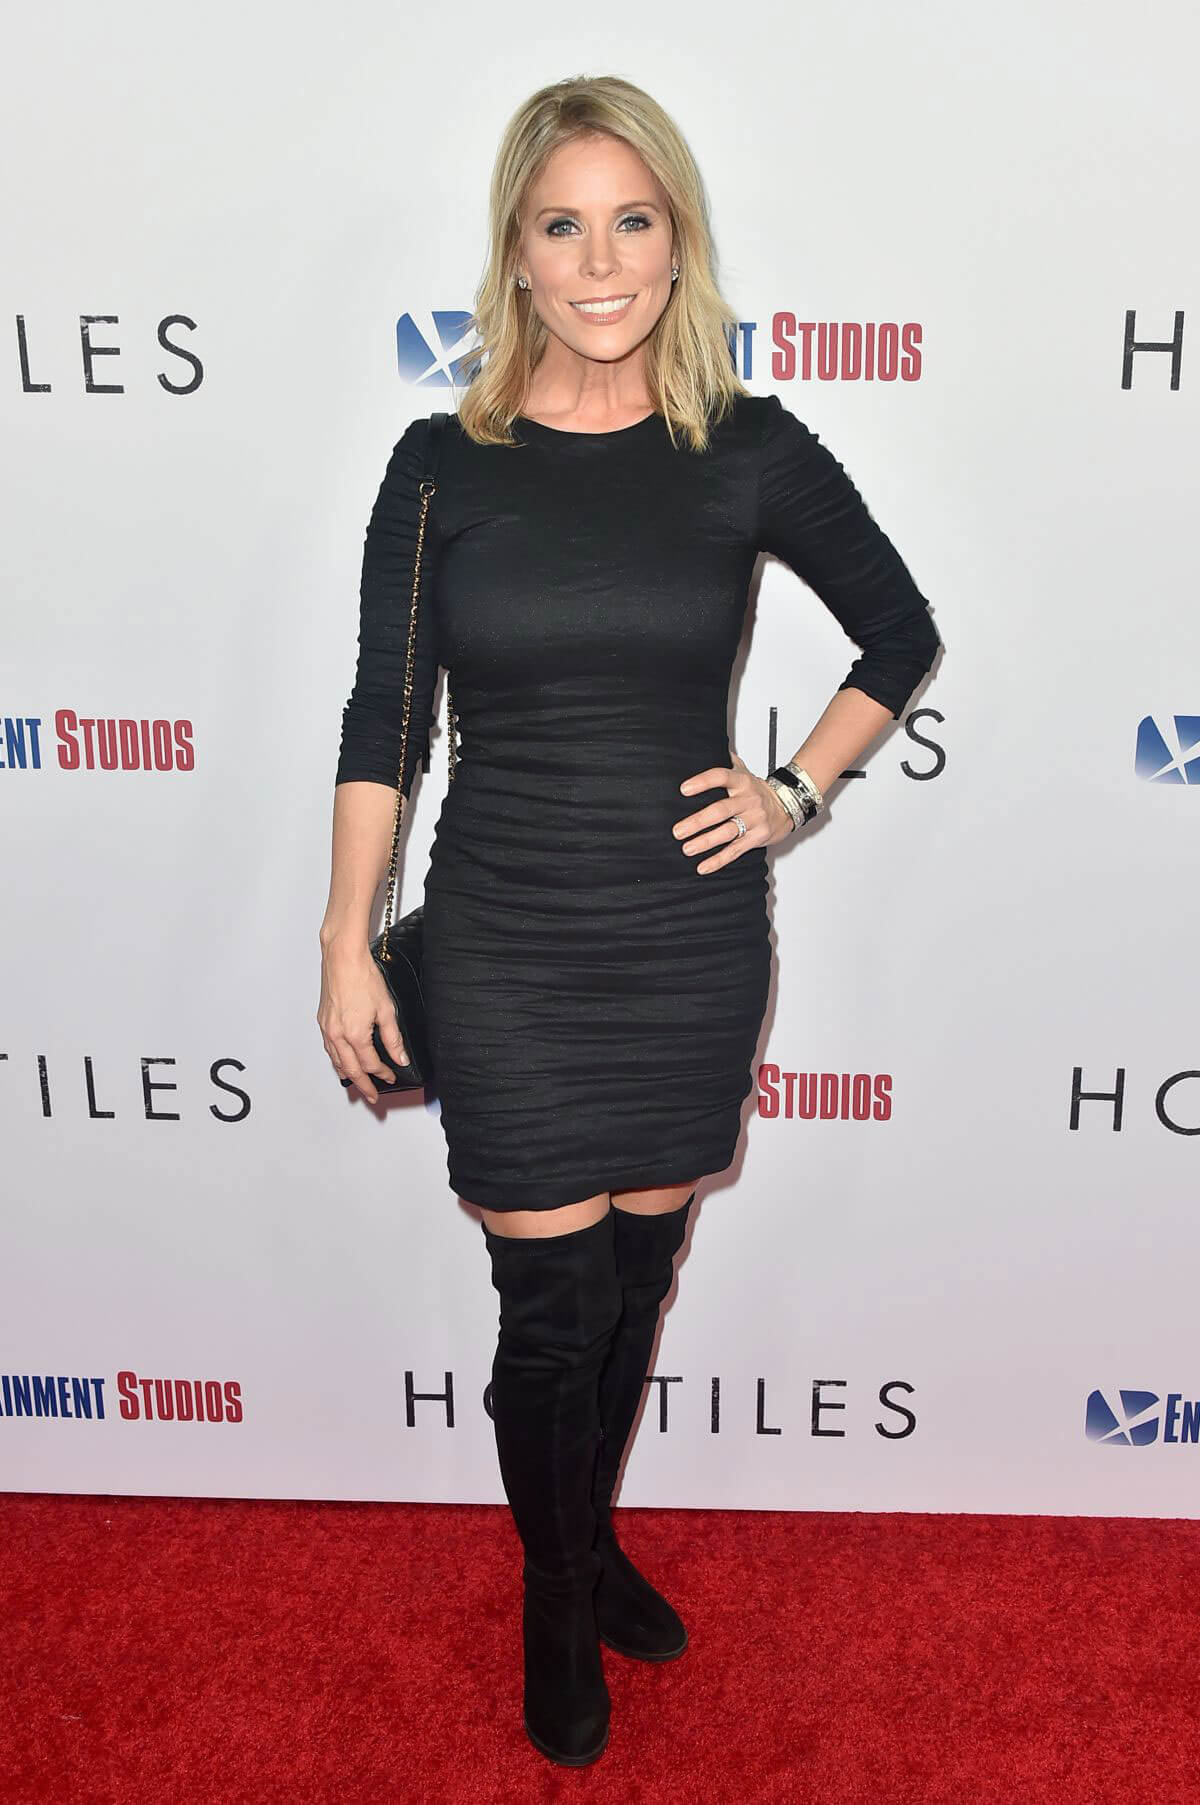 Cheryl Hines Cheryl Hines new photo